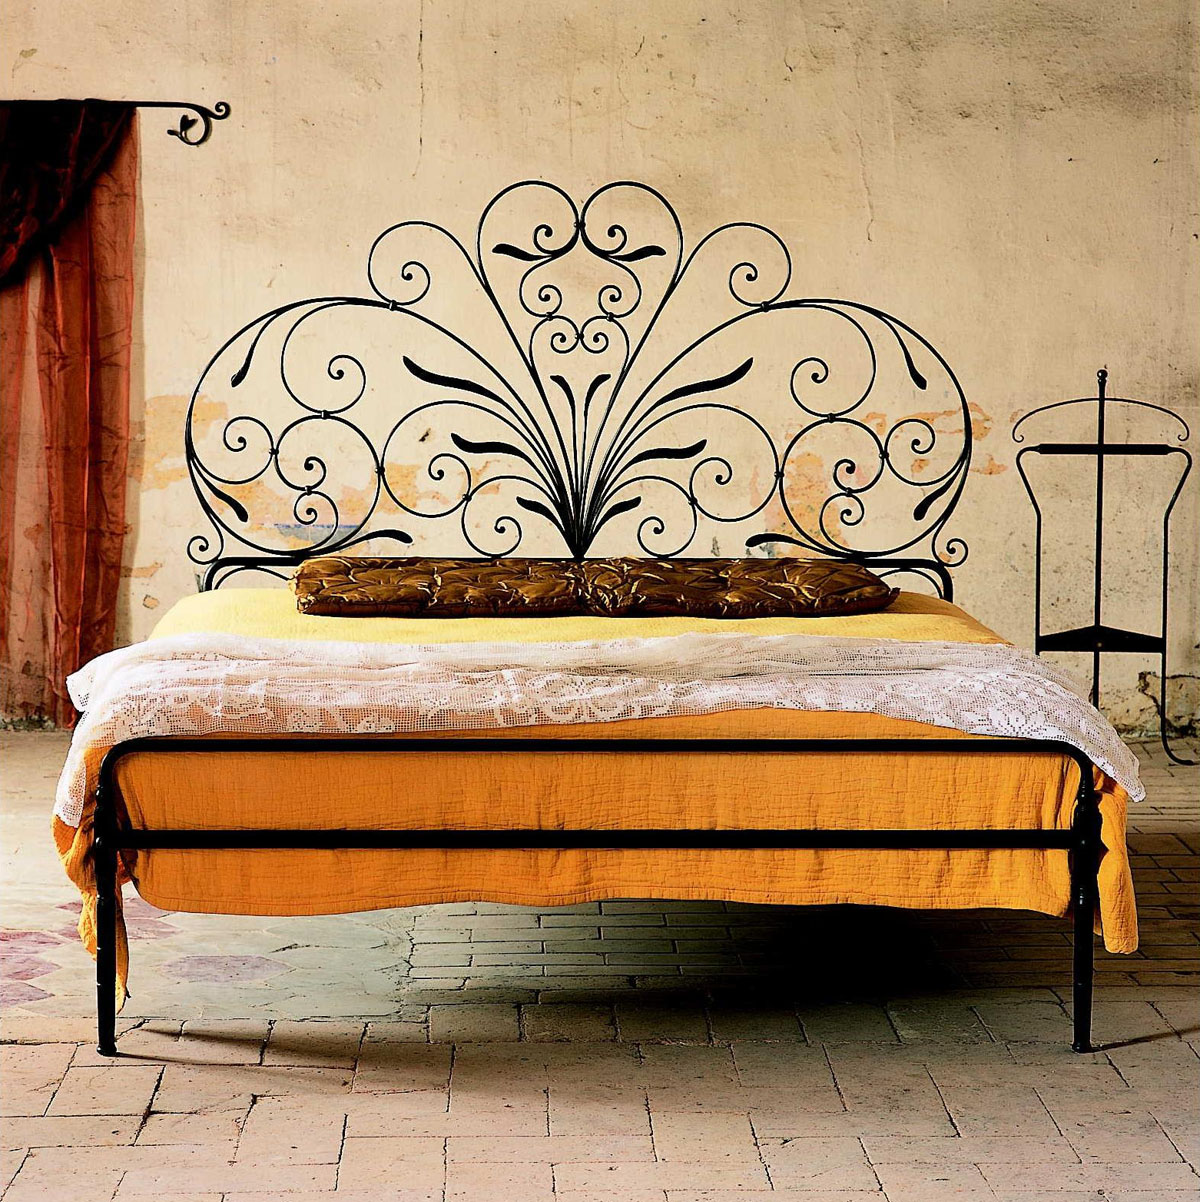 Tuscan beds design ideas idesignarch interior design architecture interior decorating - Design of bed ...